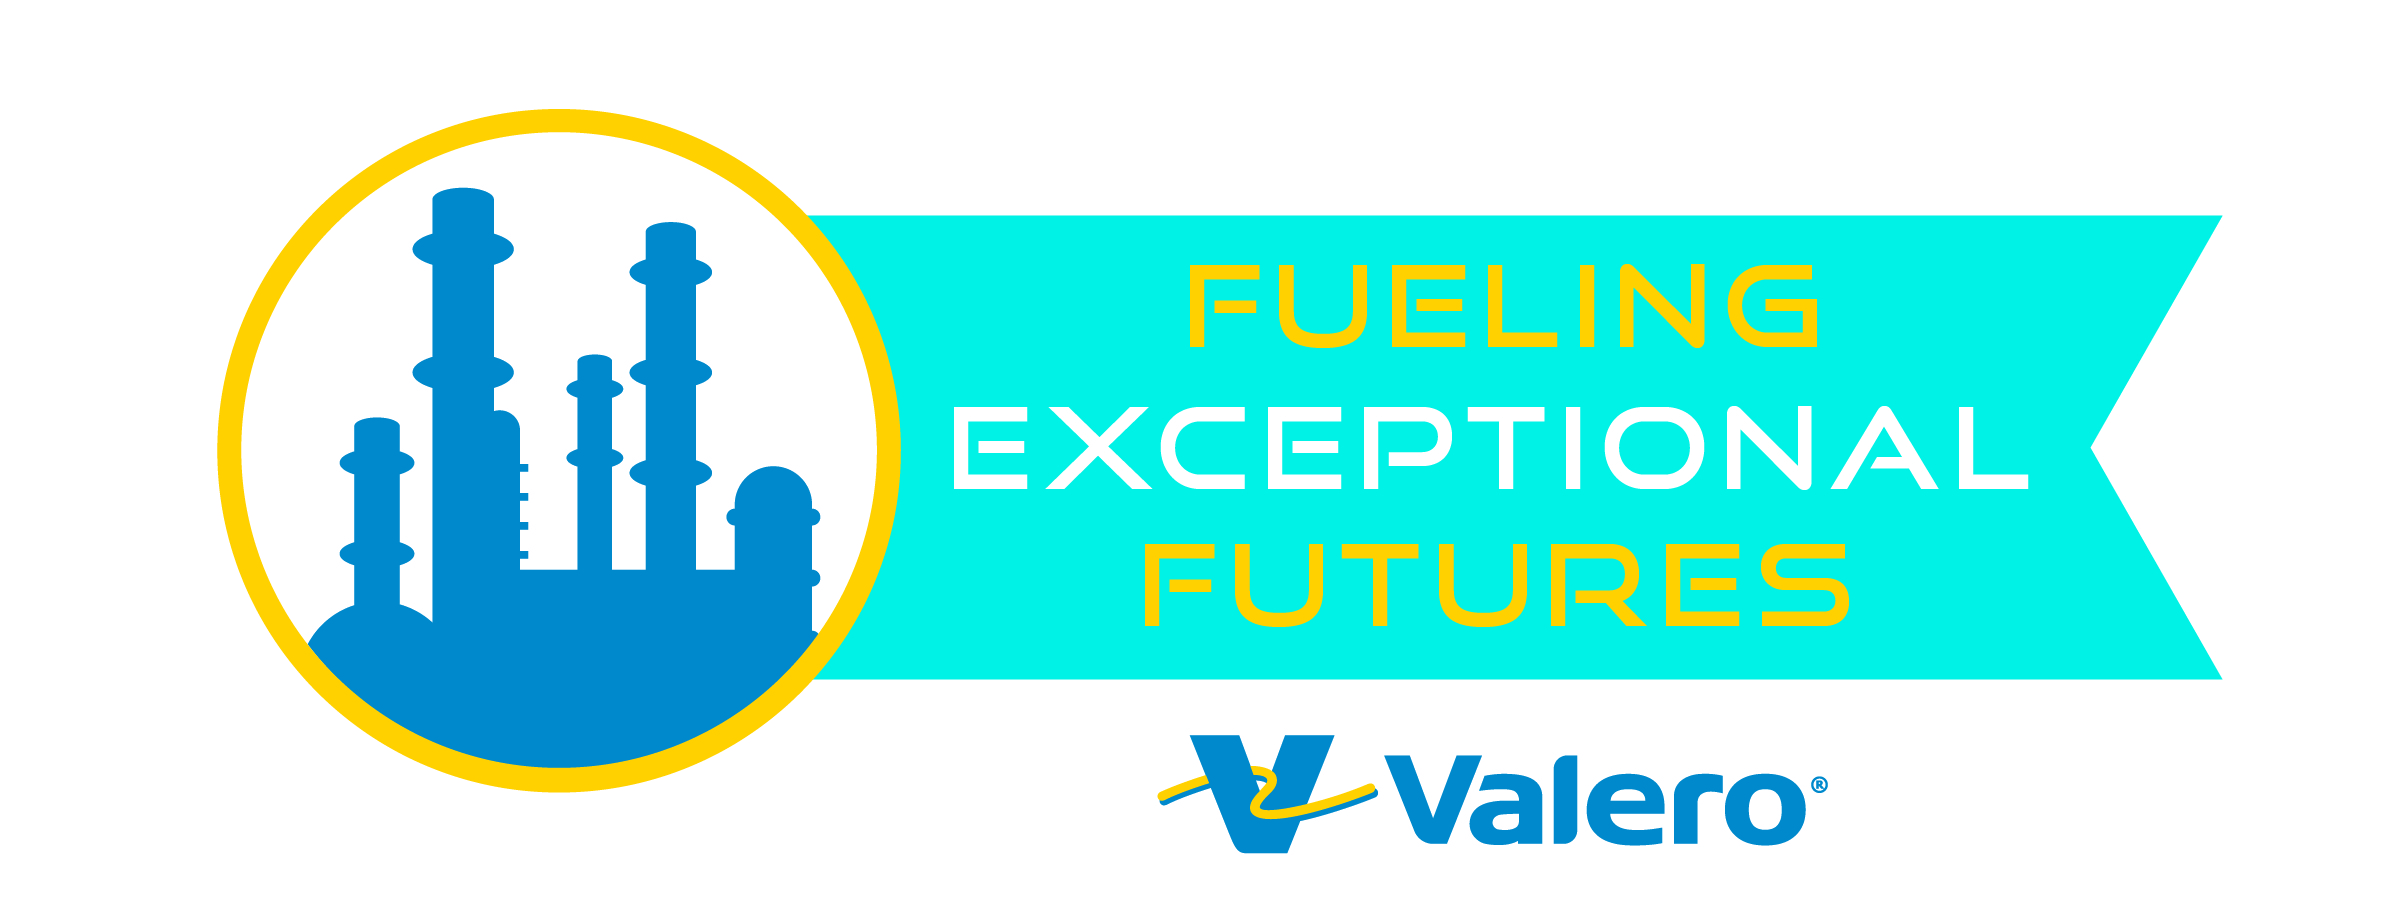 Fueling Exceptional Futures logo